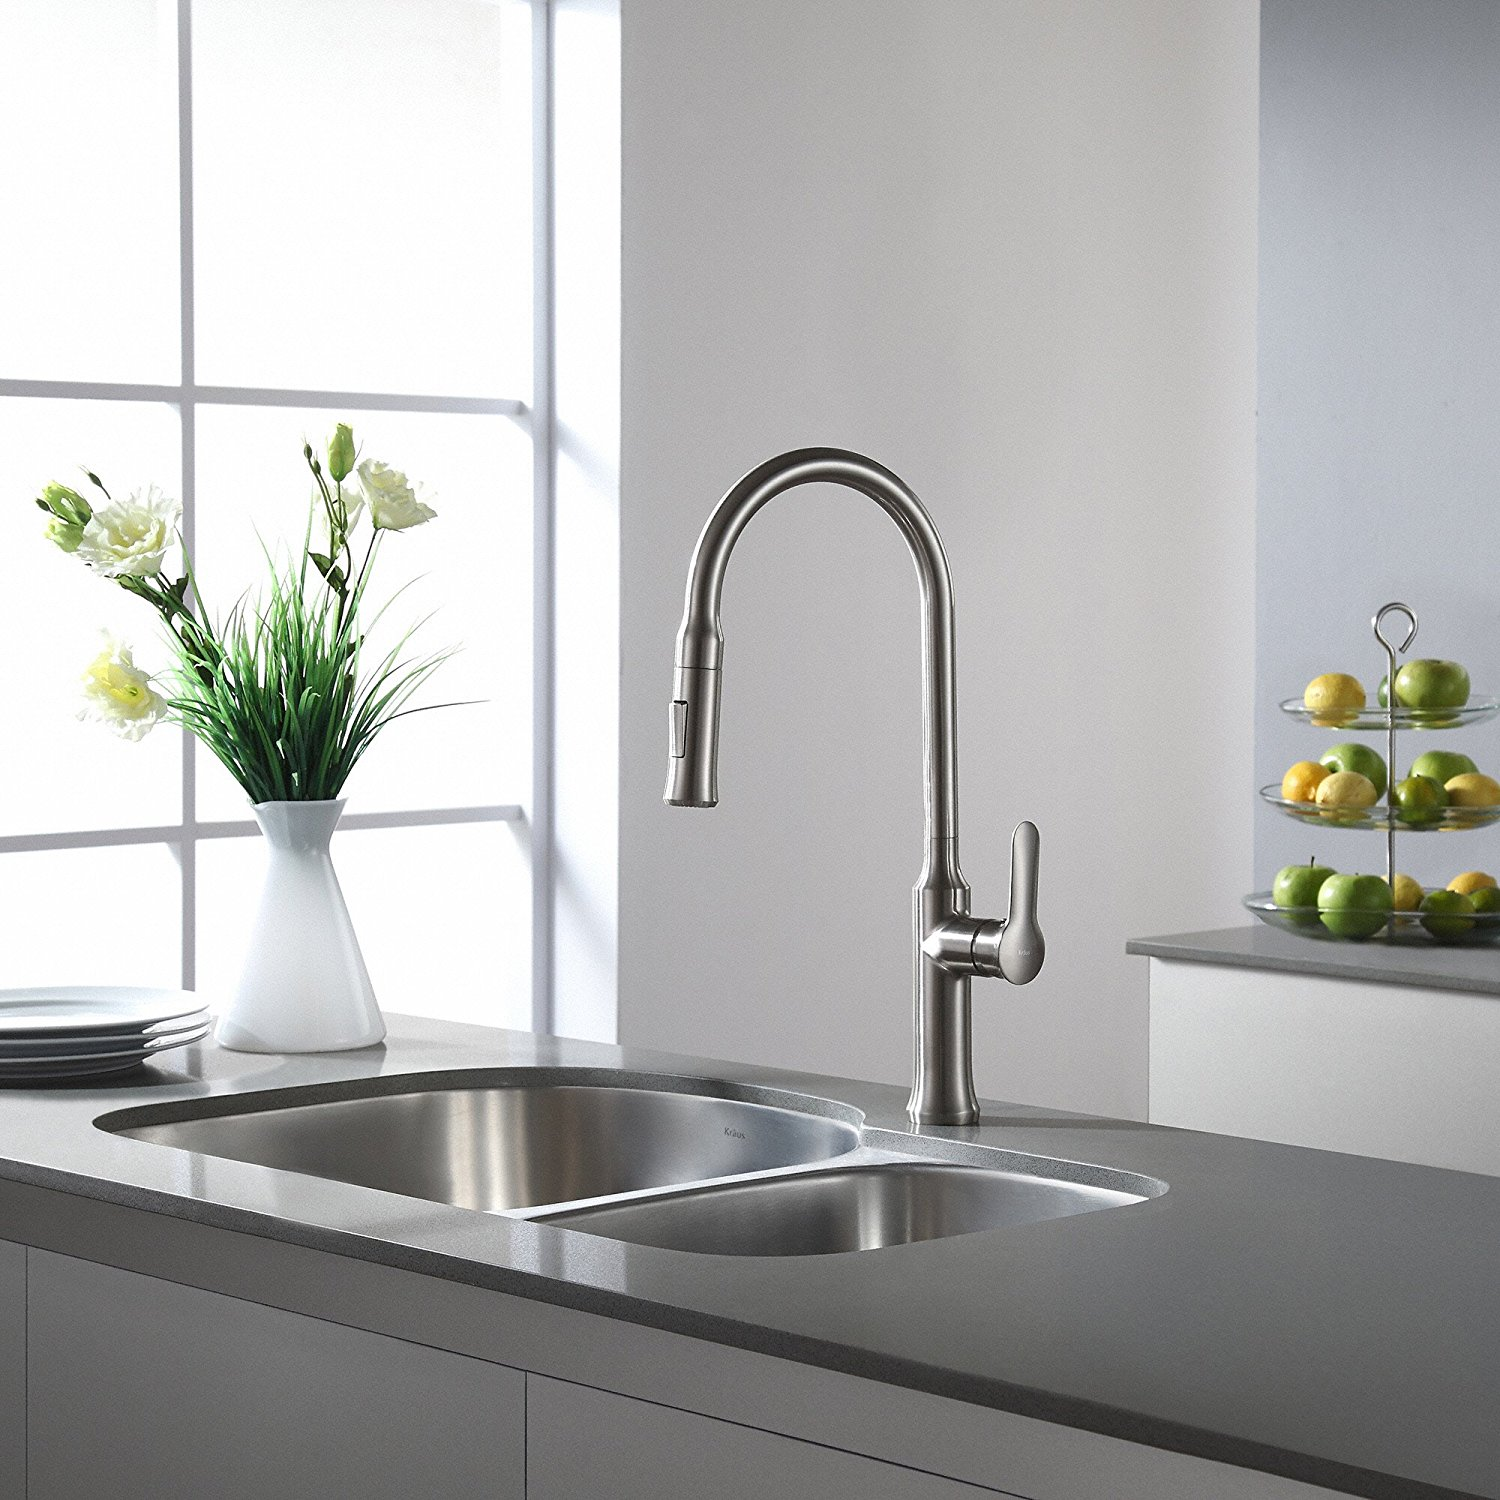 Best Kraus Faucet Reviews 2018 Which One Should You Get